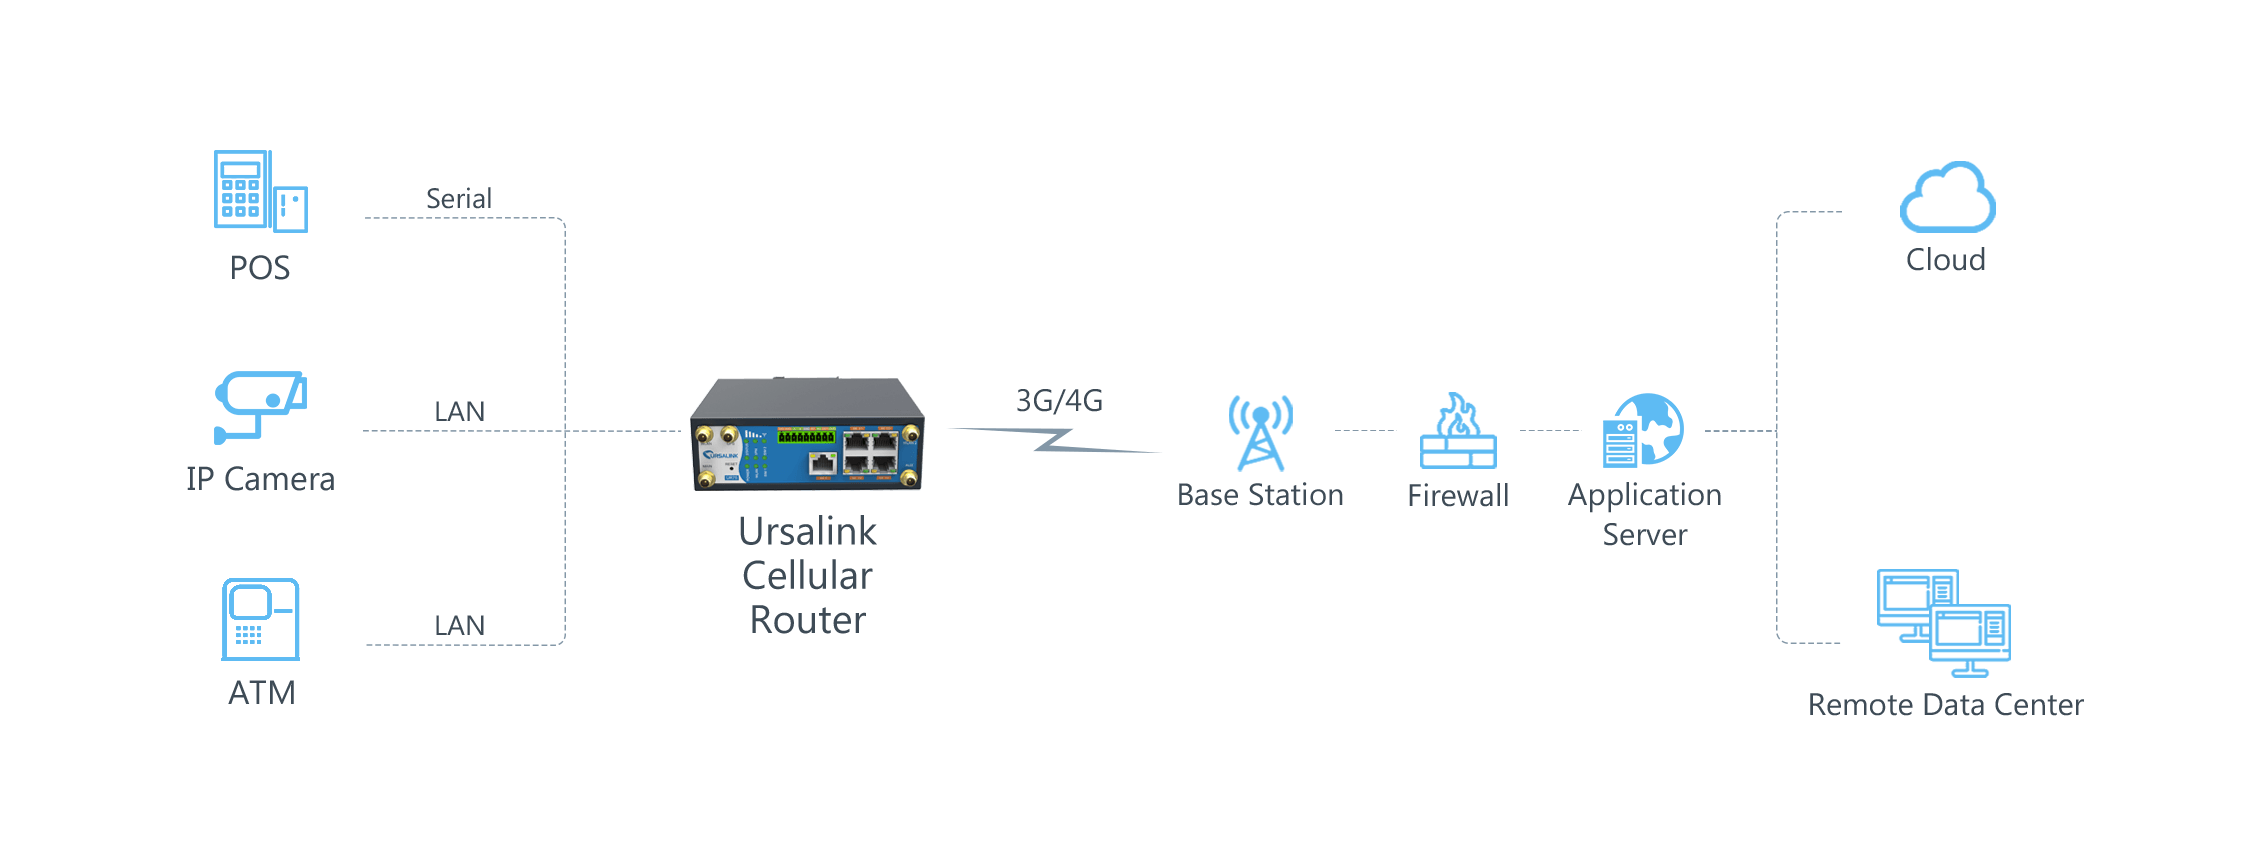 ursalink_atm_monitoring_topology